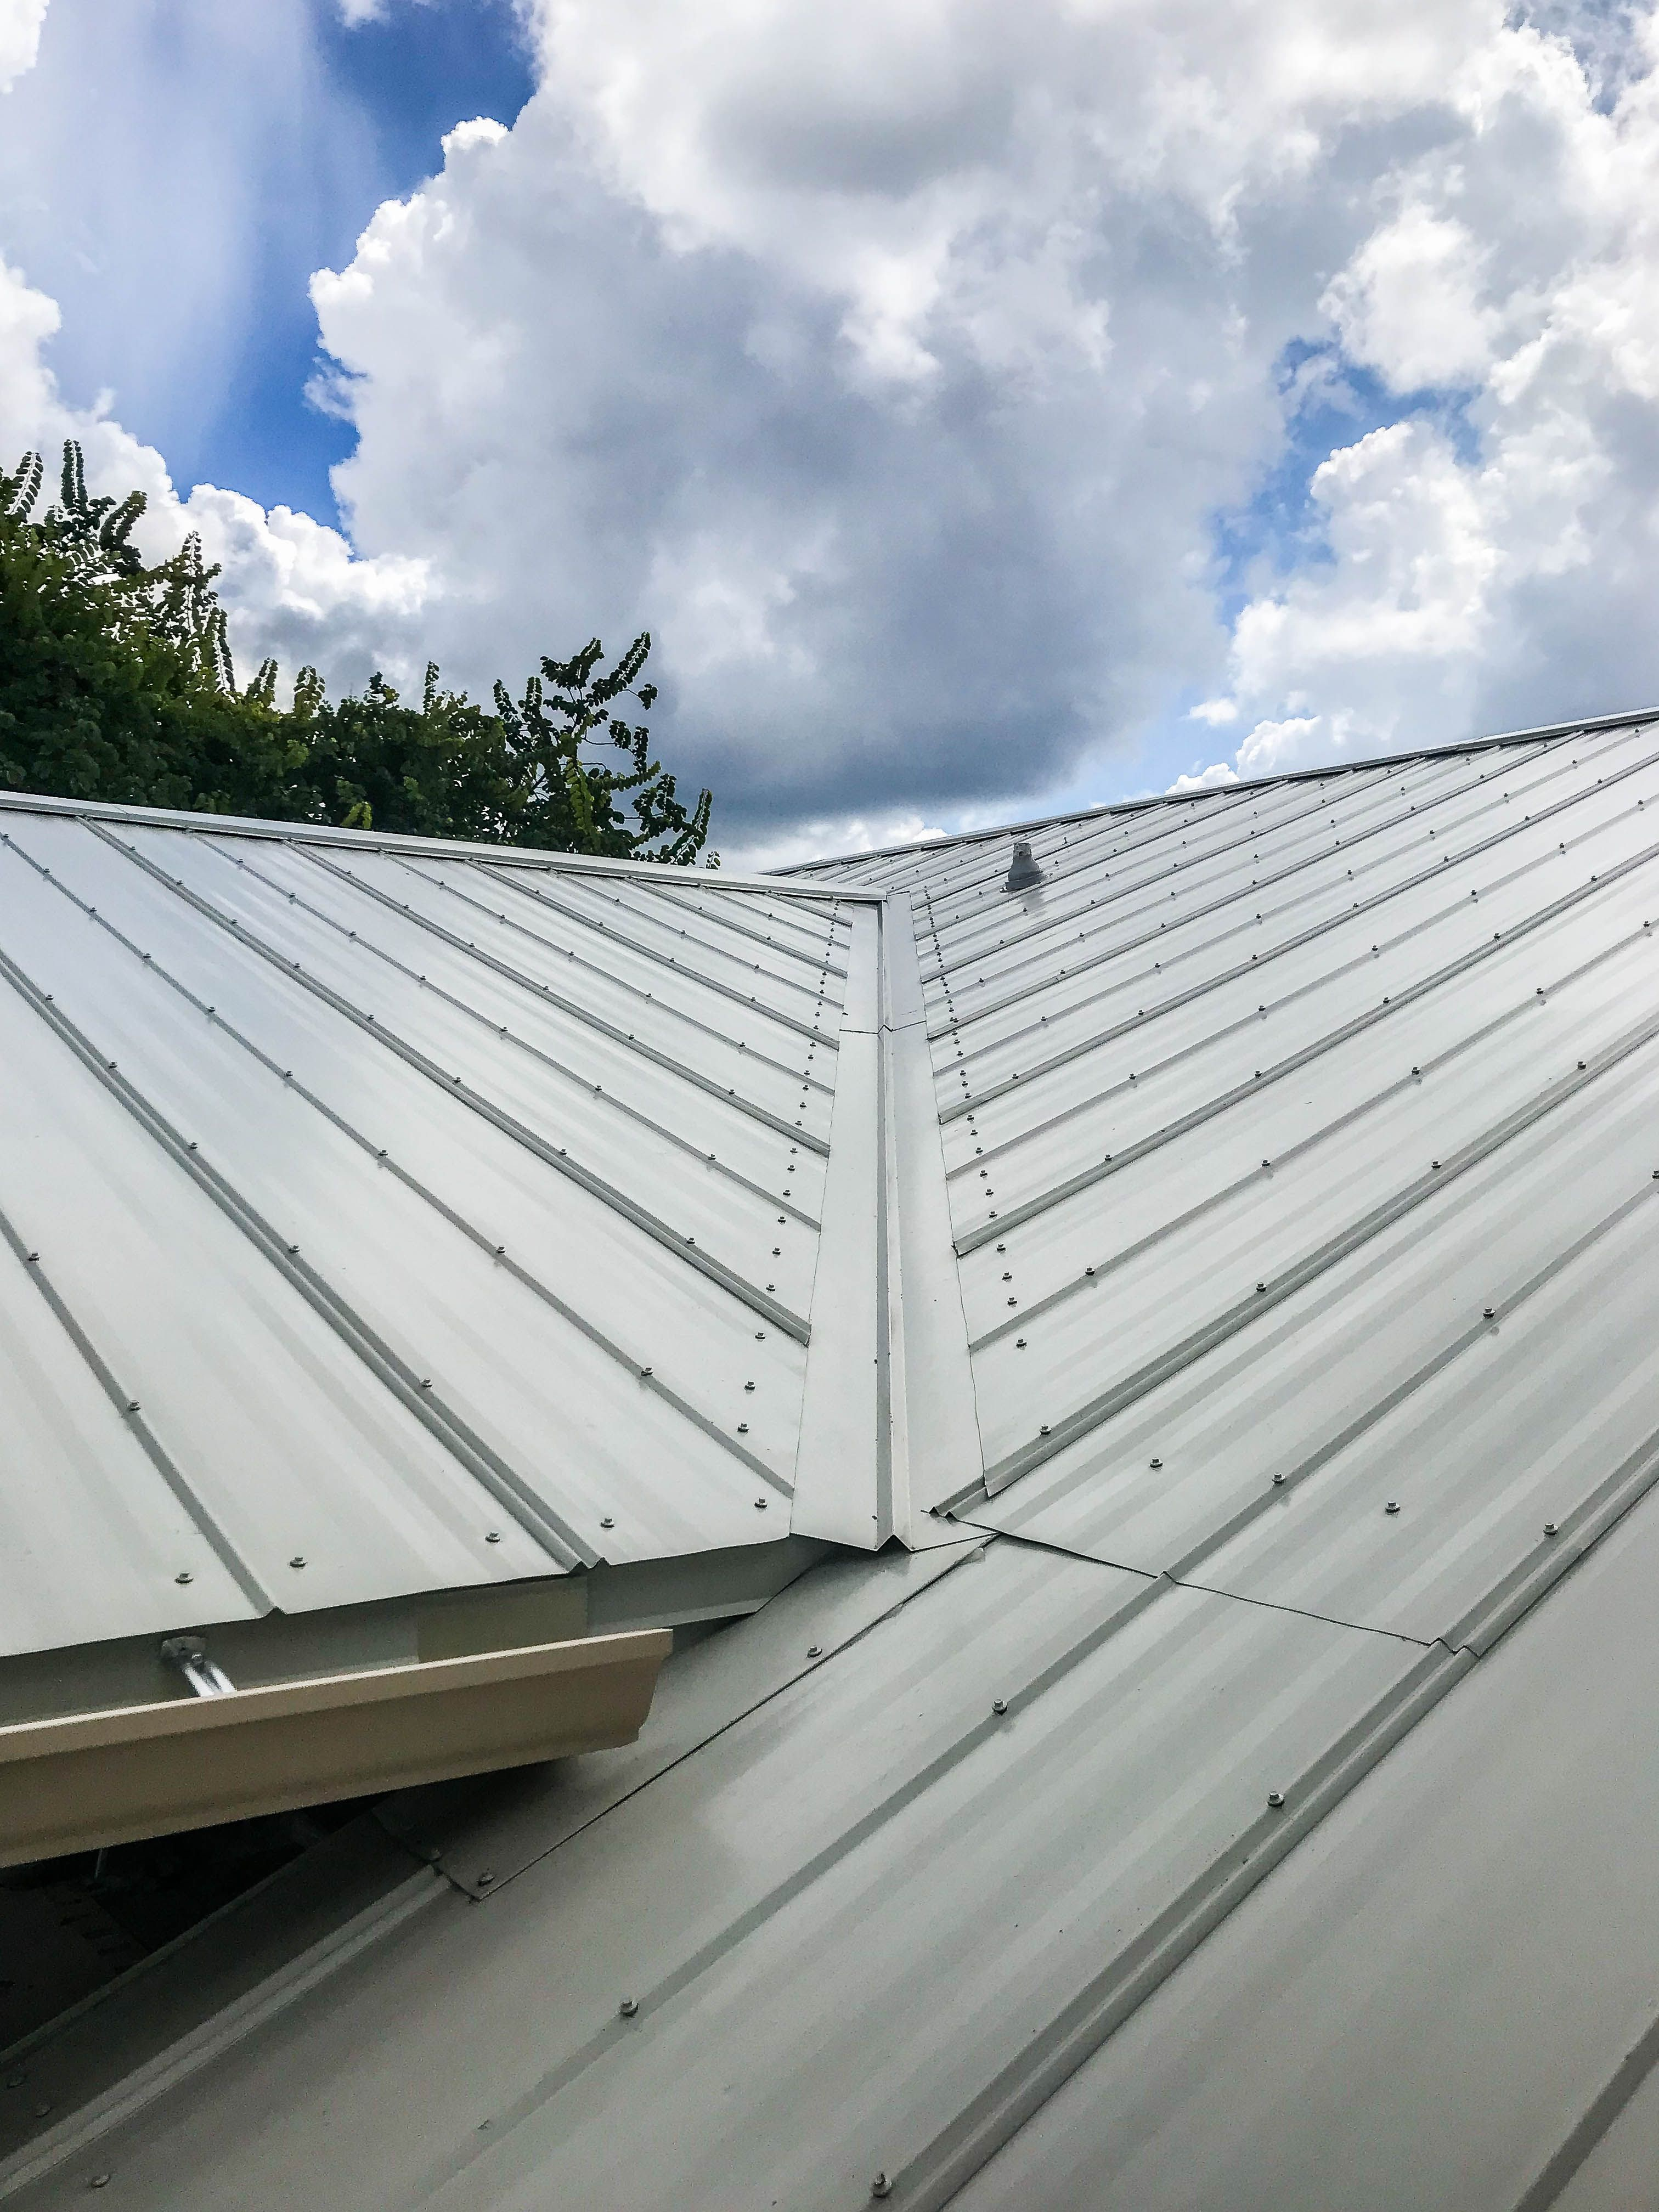 Mapi 5 V Metal Roofing System Fabricated And Installed By Mullet S